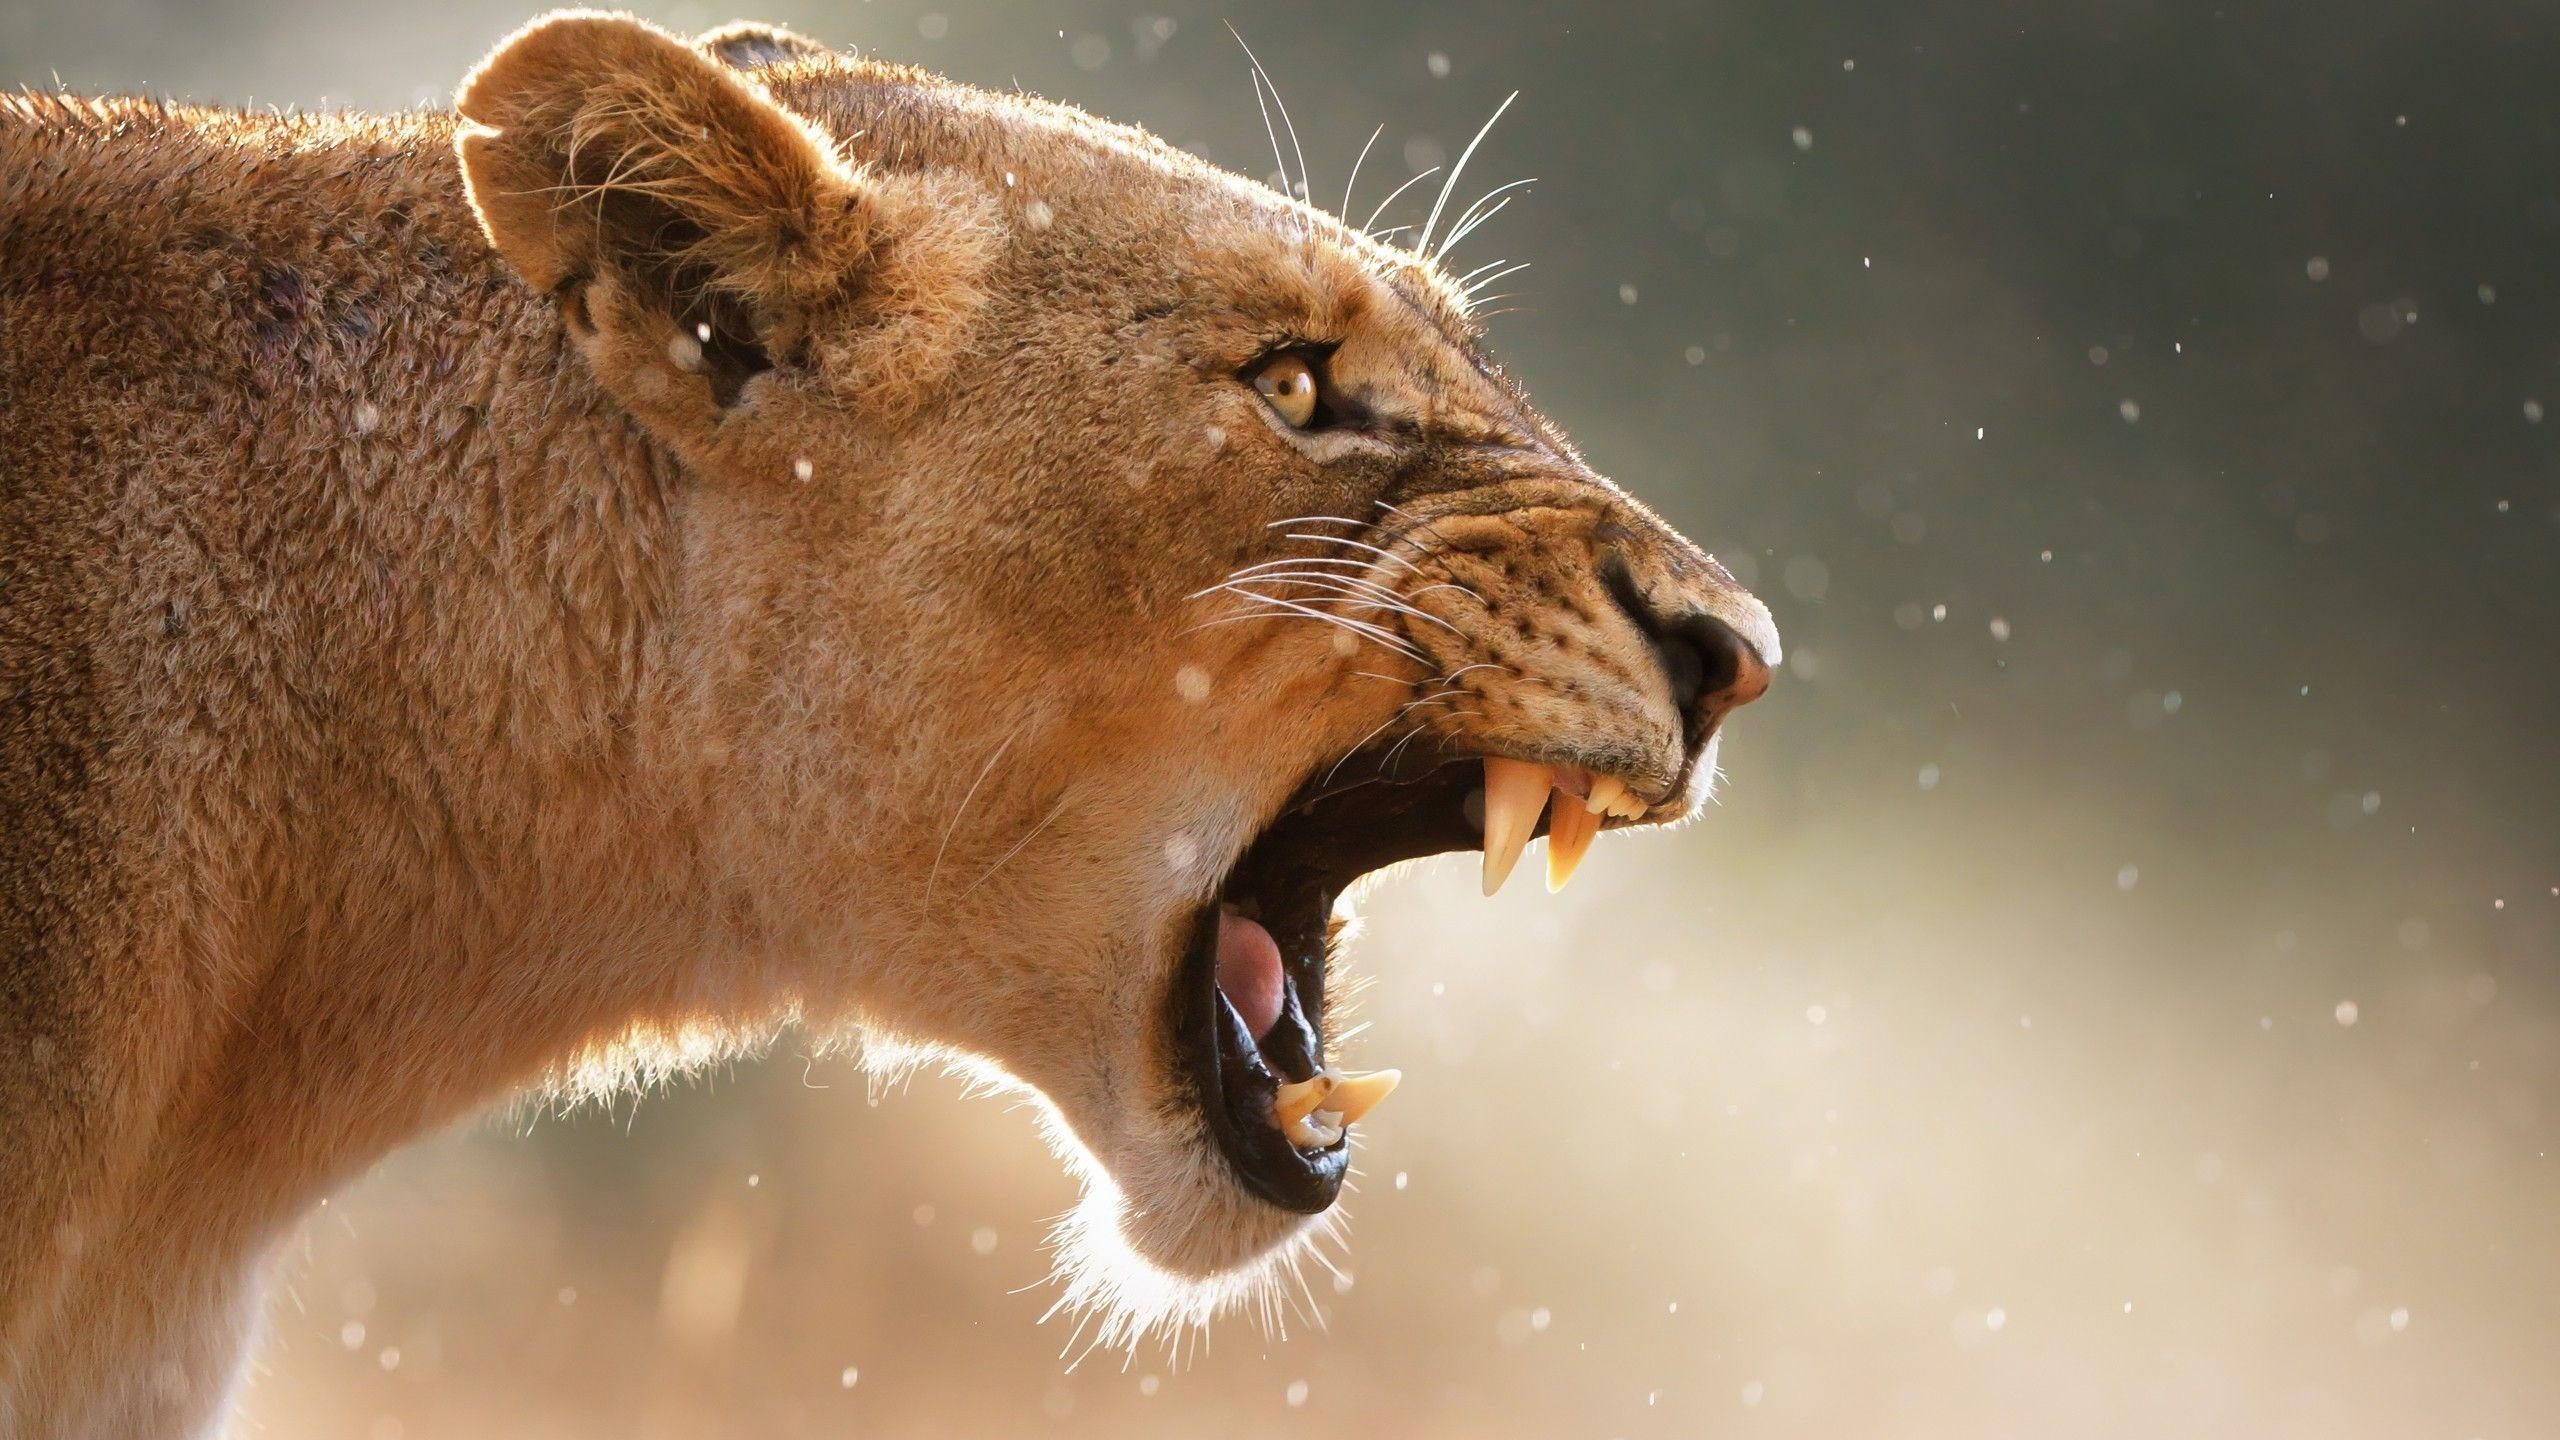 lioness wallpapers wallpaper cave